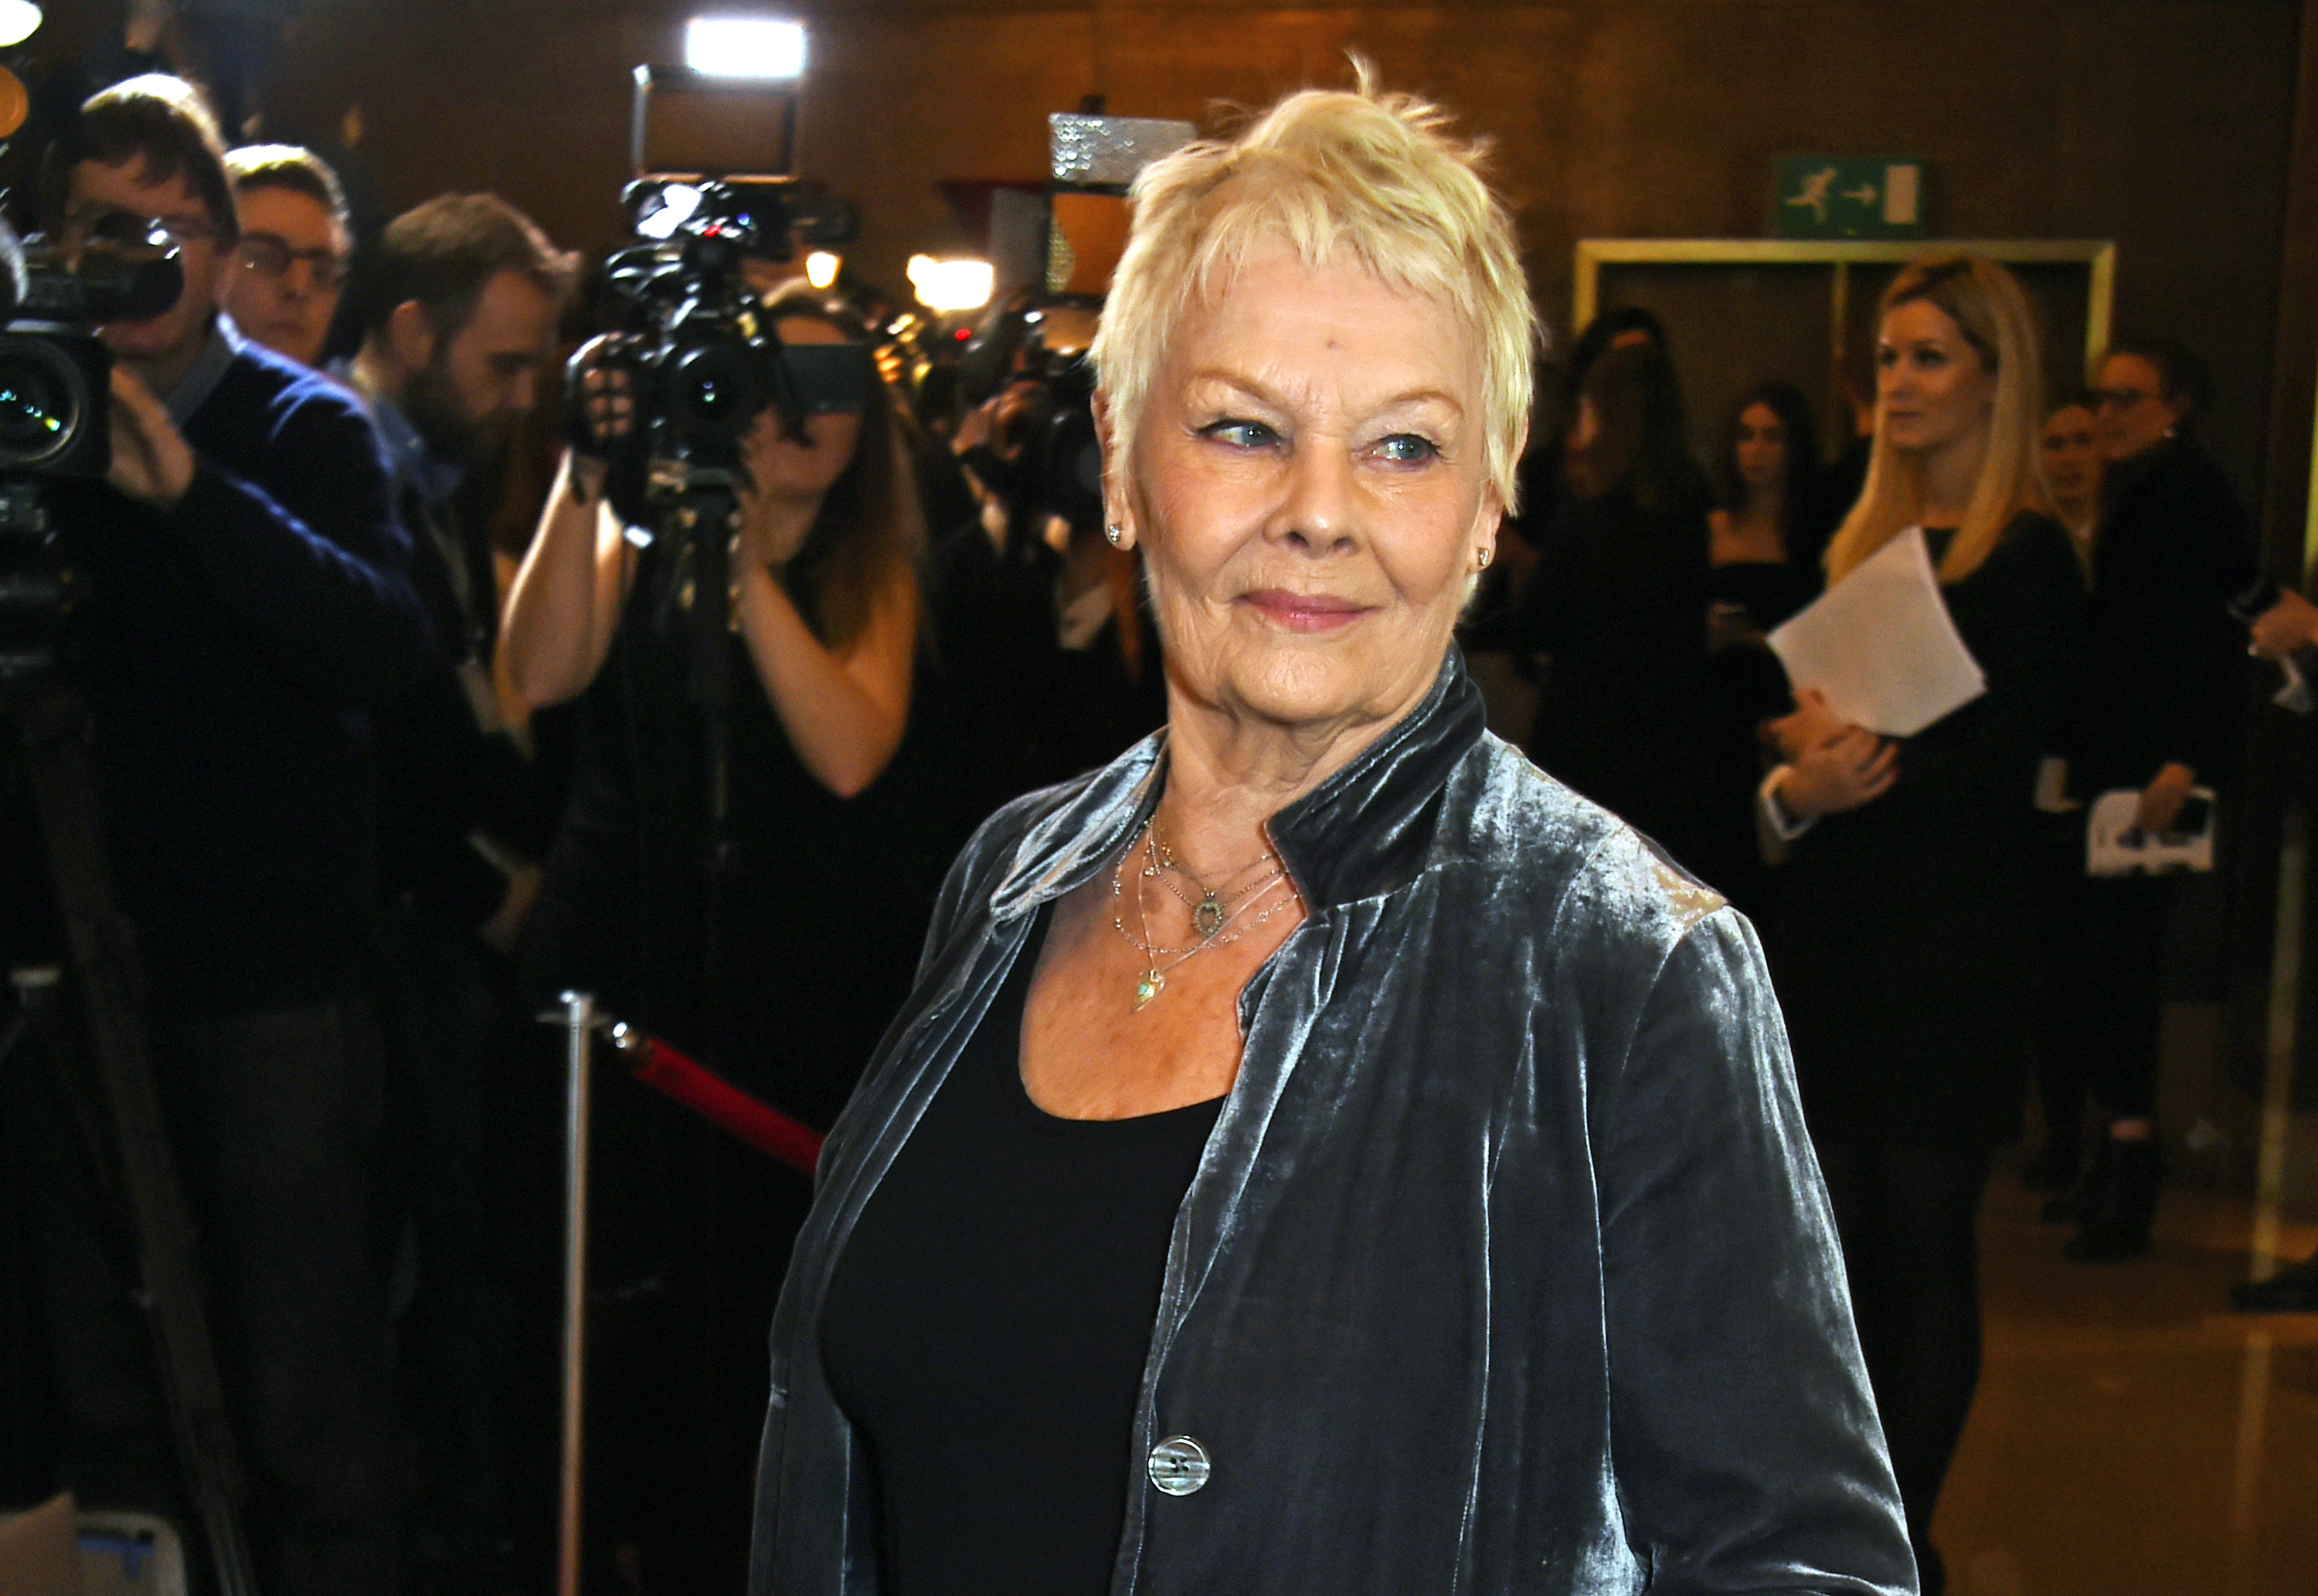 Dame Judi Dench arrives at The London Critics' Circle Film Awards at The May Fair Hotel on January 17, 2016 in London, England.